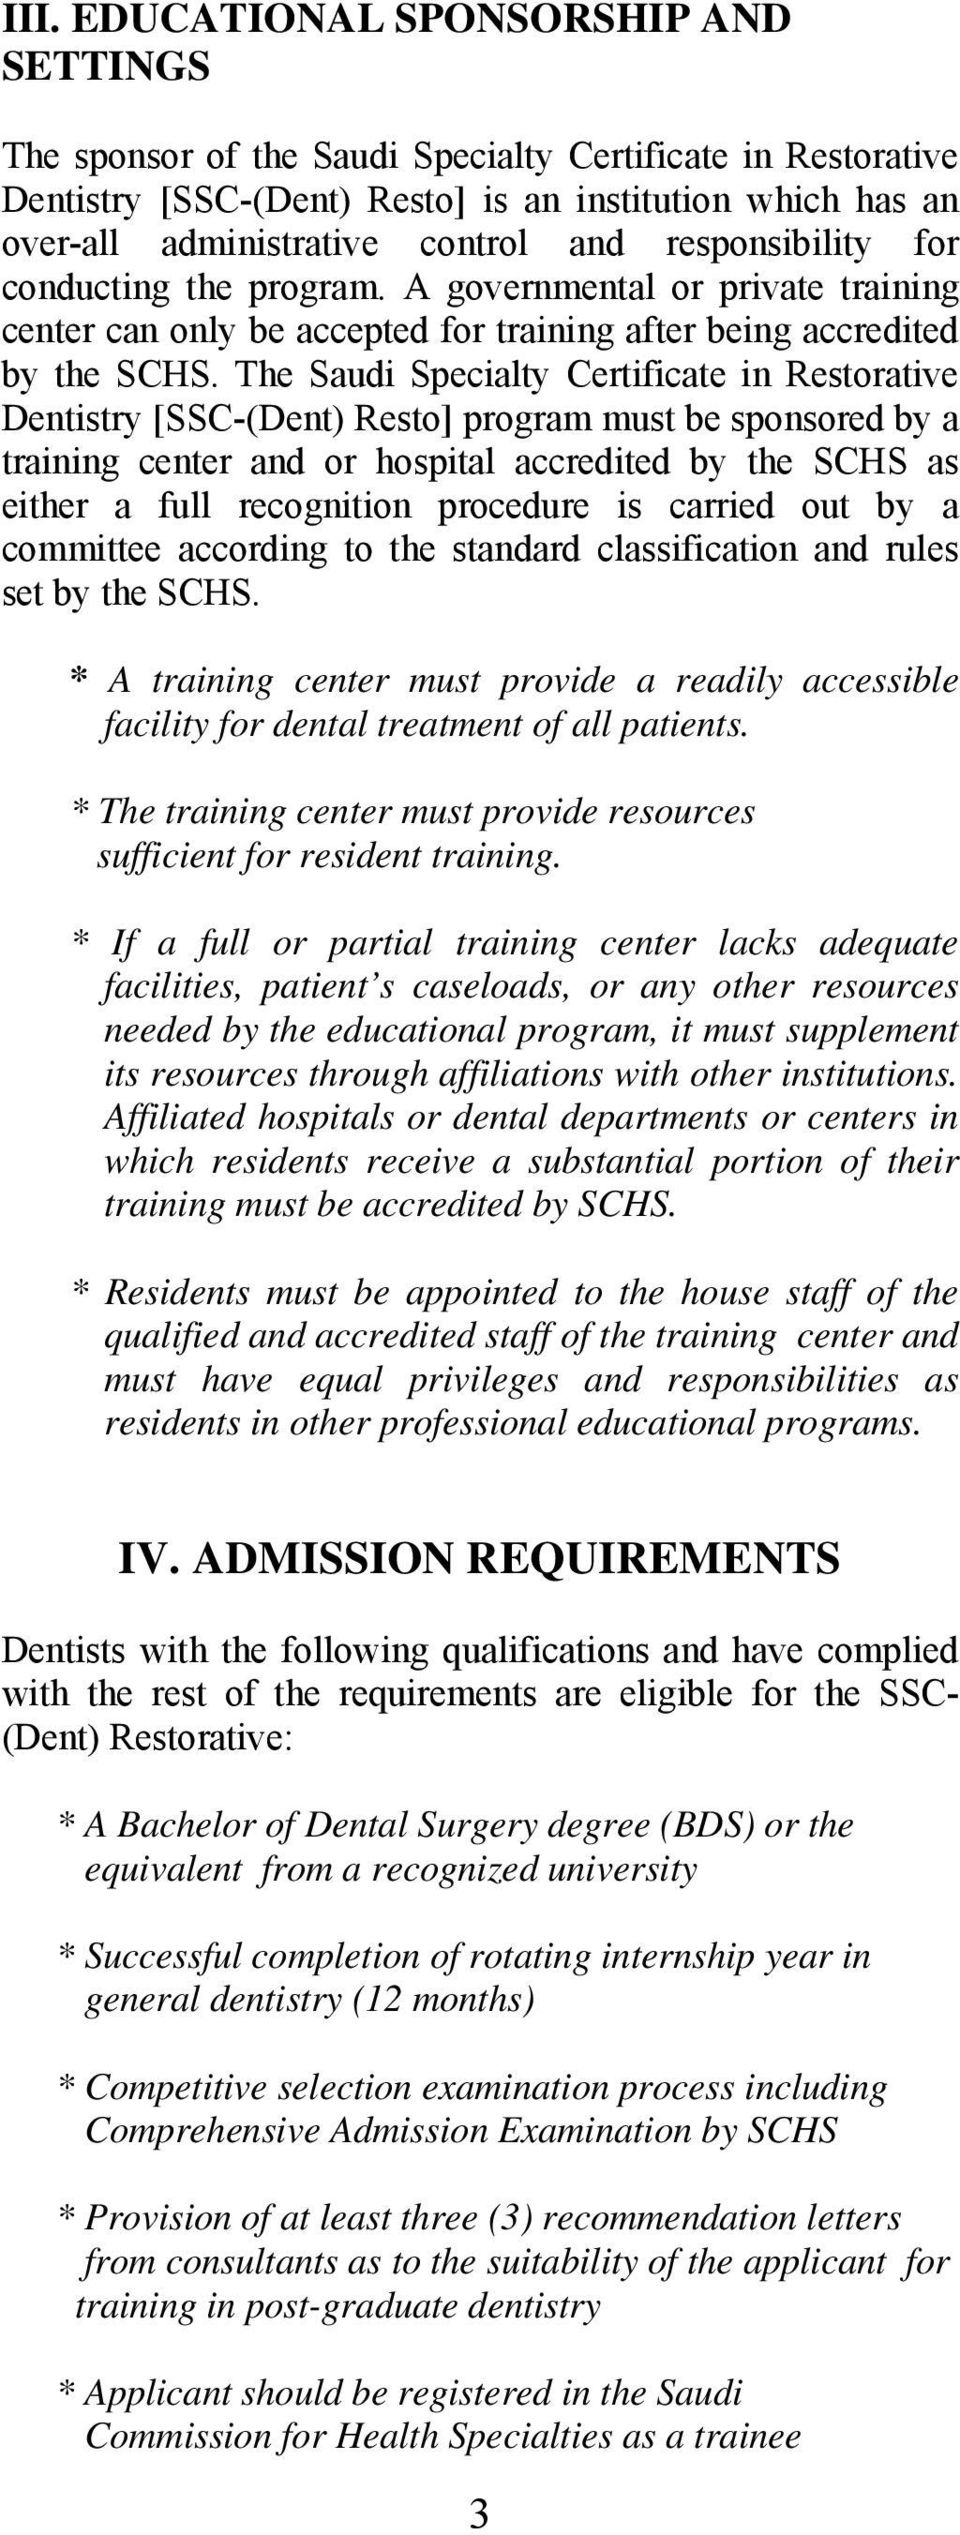 The Saudi Specialty Certificate in Restorative Dentistry [SSC-(Dent) Resto] program must be sponsored by a training center and or hospital accredited by the SCHS as either a full recognition